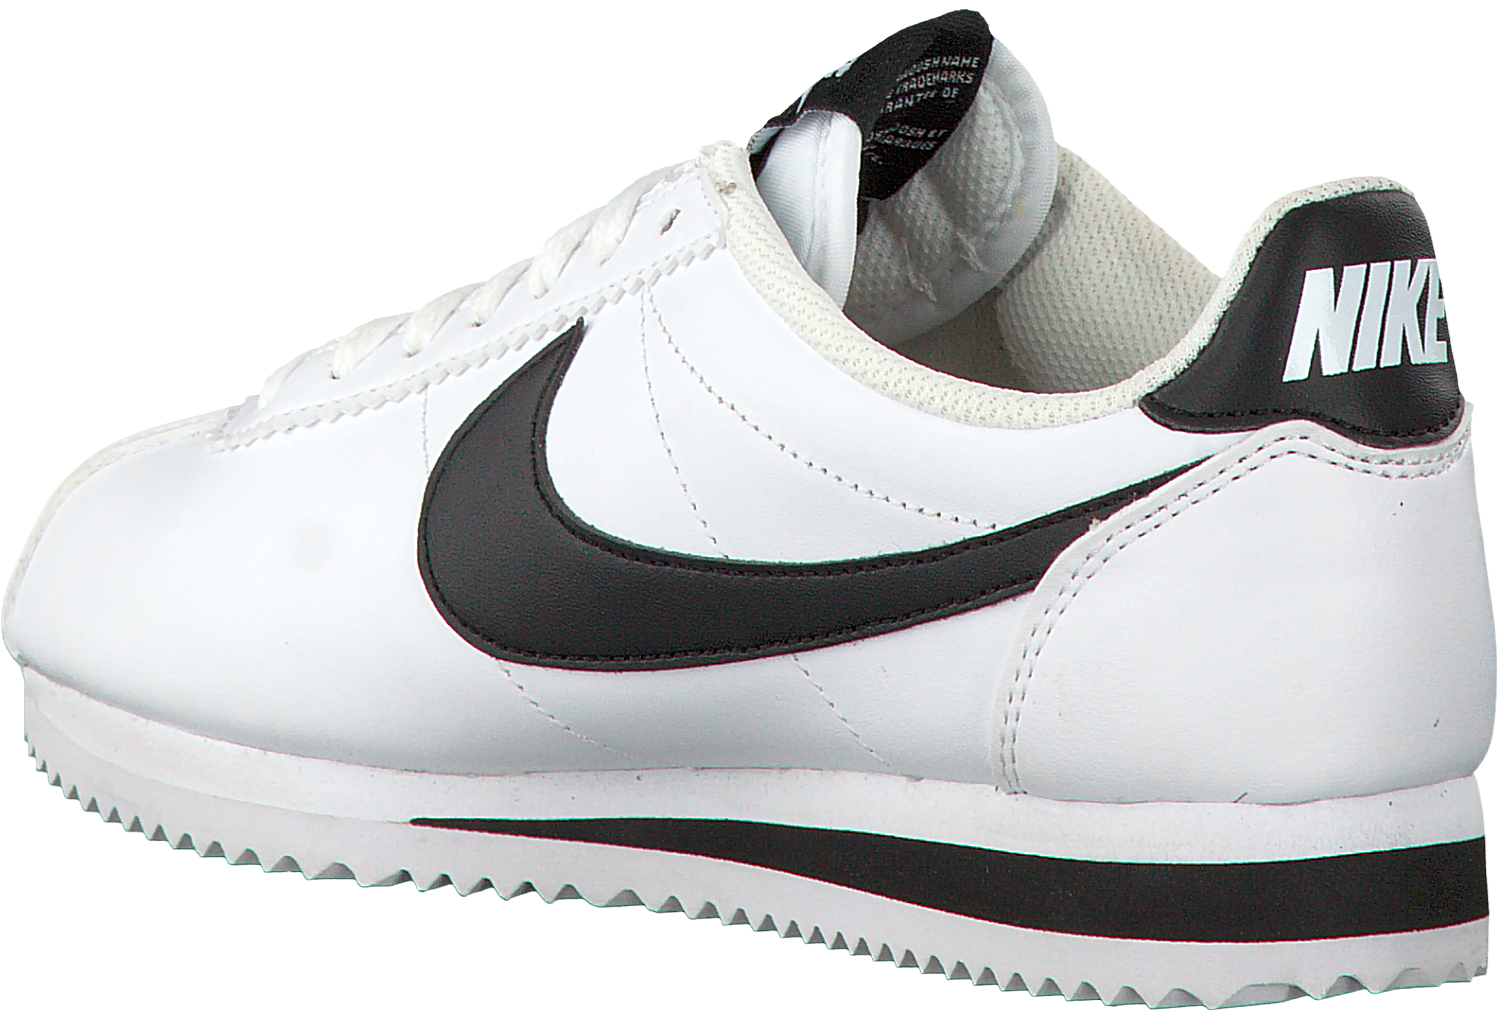 NIKE WMNS CLASSIC CORTEZ LEATHER 807471101 | WEIß | 59,99 € | Sneaker | ✪ ✪